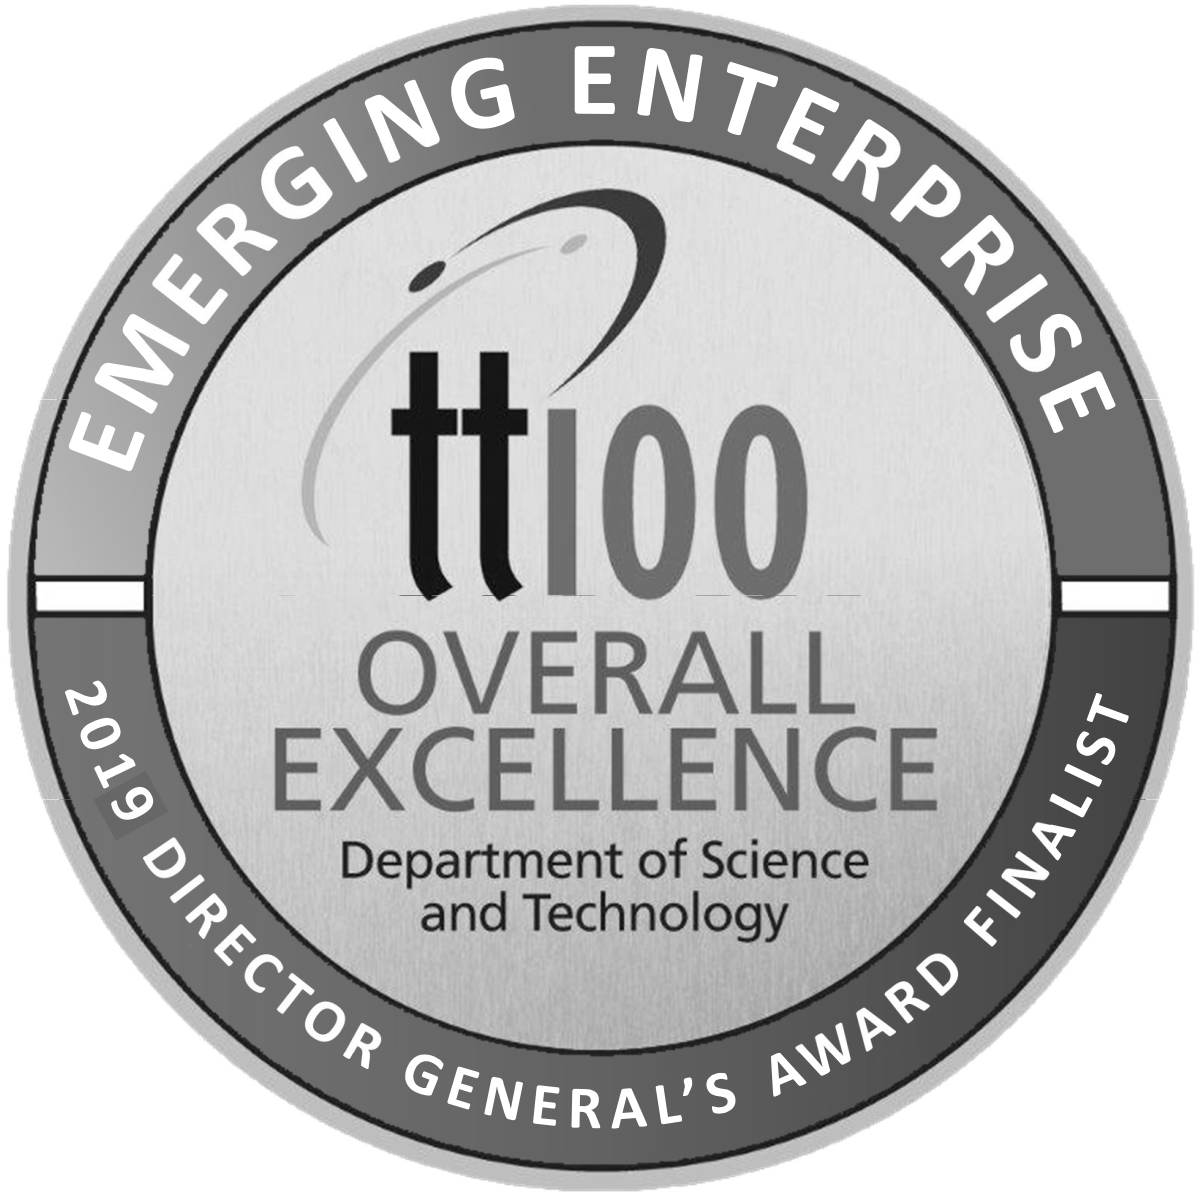 tt100-seal-overall-excellence-01